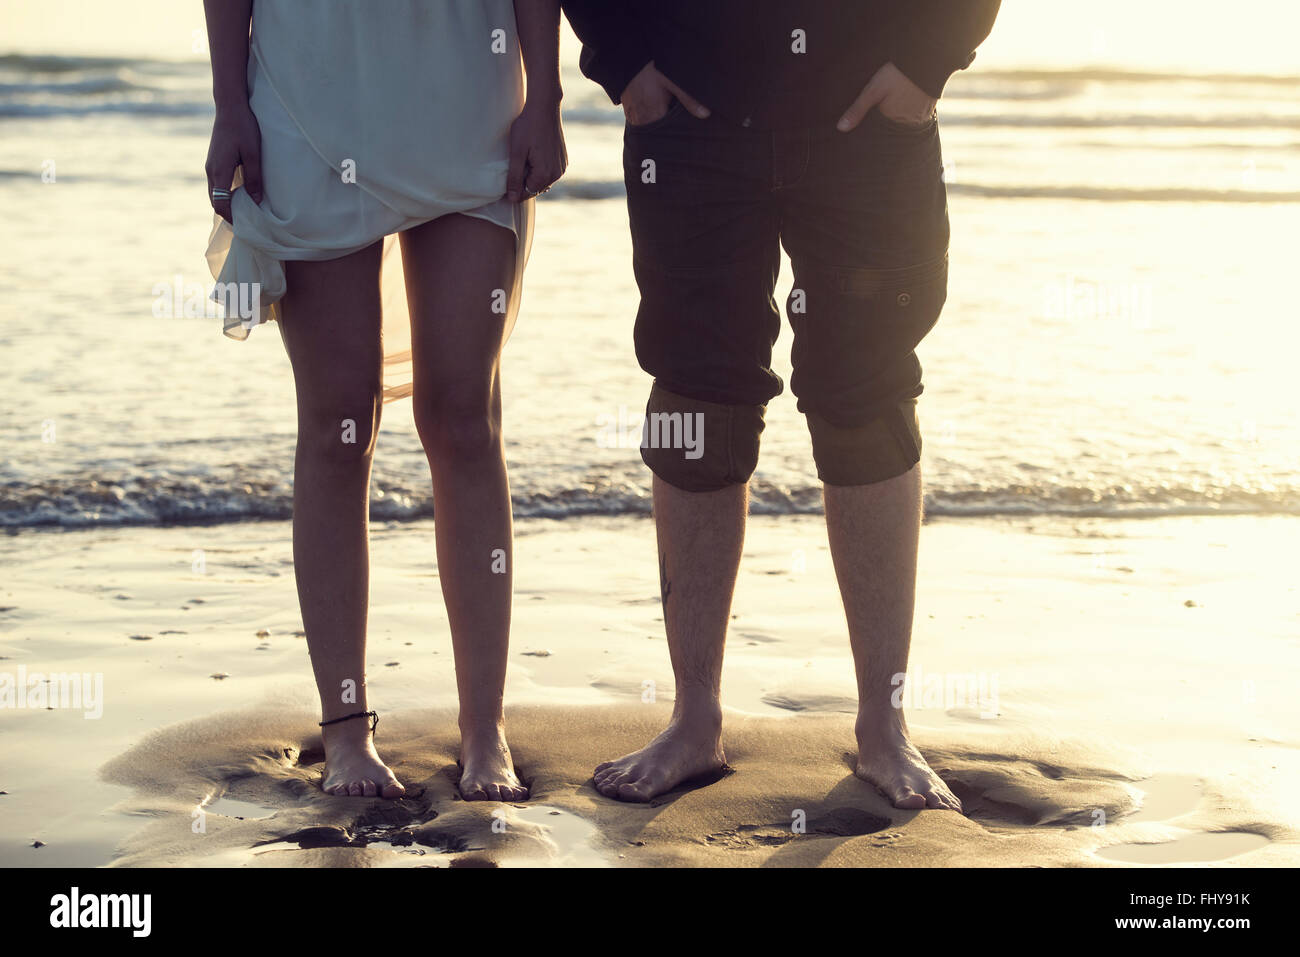 Spain, Cadiz, legs of young couple standing barefoot atseafront - Stock Image